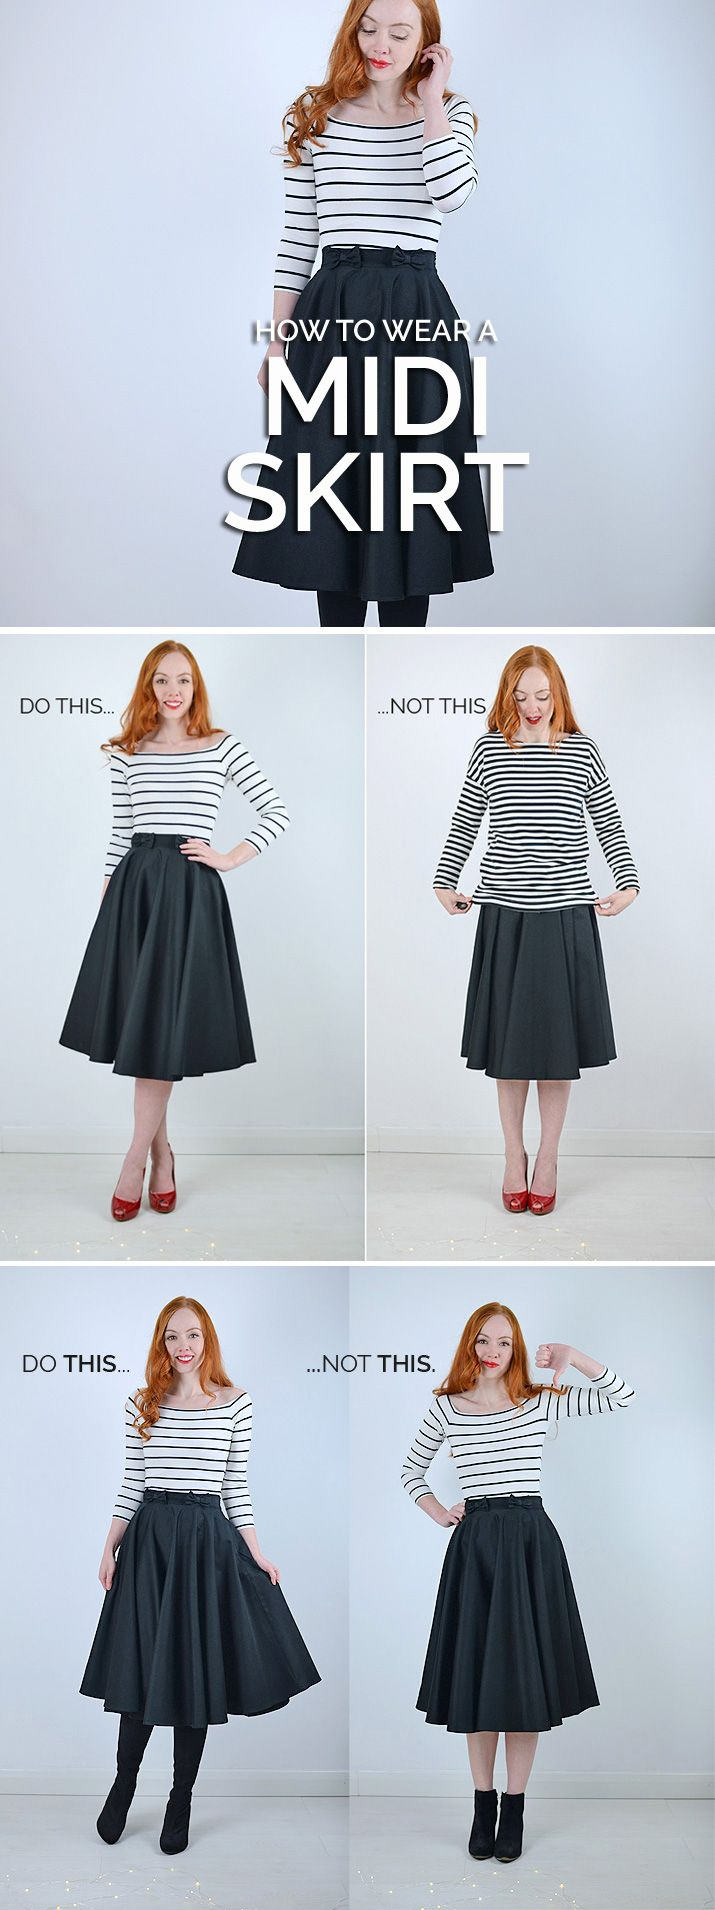 Midi-skirts can look great all year round - here's how to wear one! And how not to...